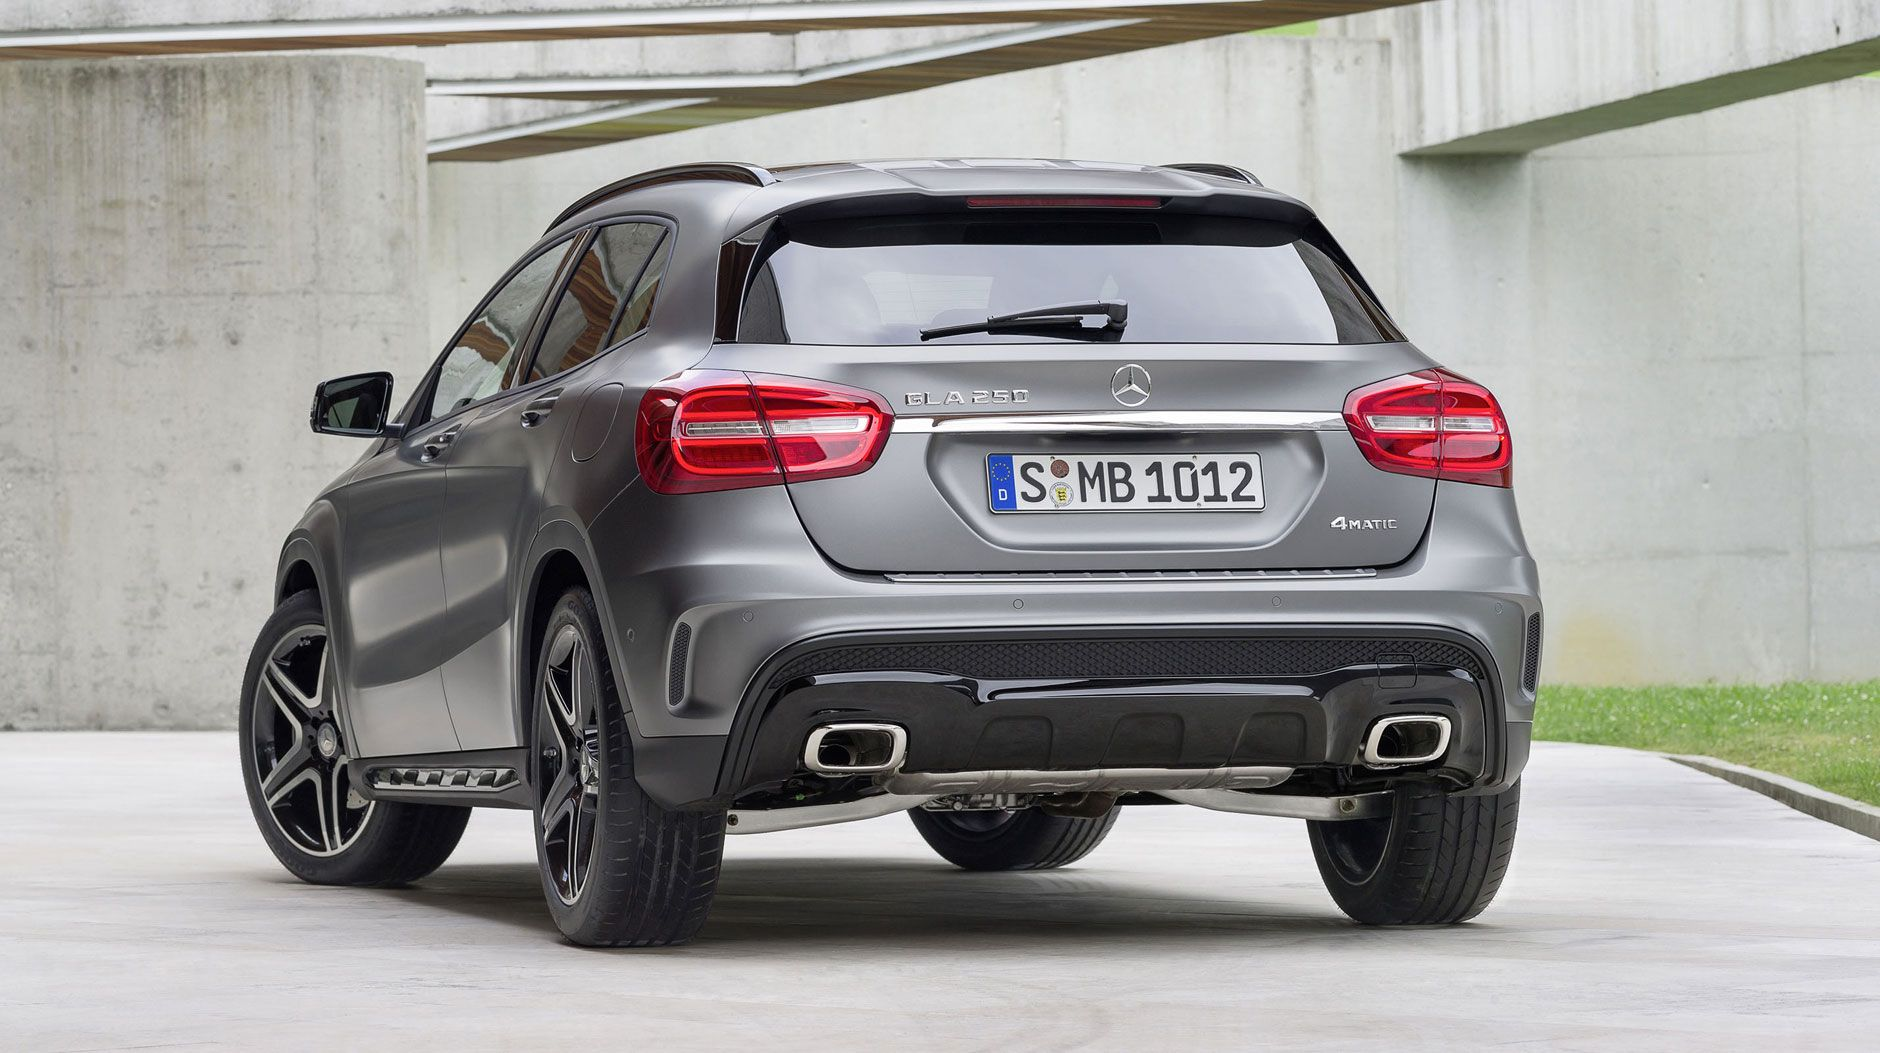 340 New Cars Wagons Suvs In Stock Mercedes Benz Benz Mercedes